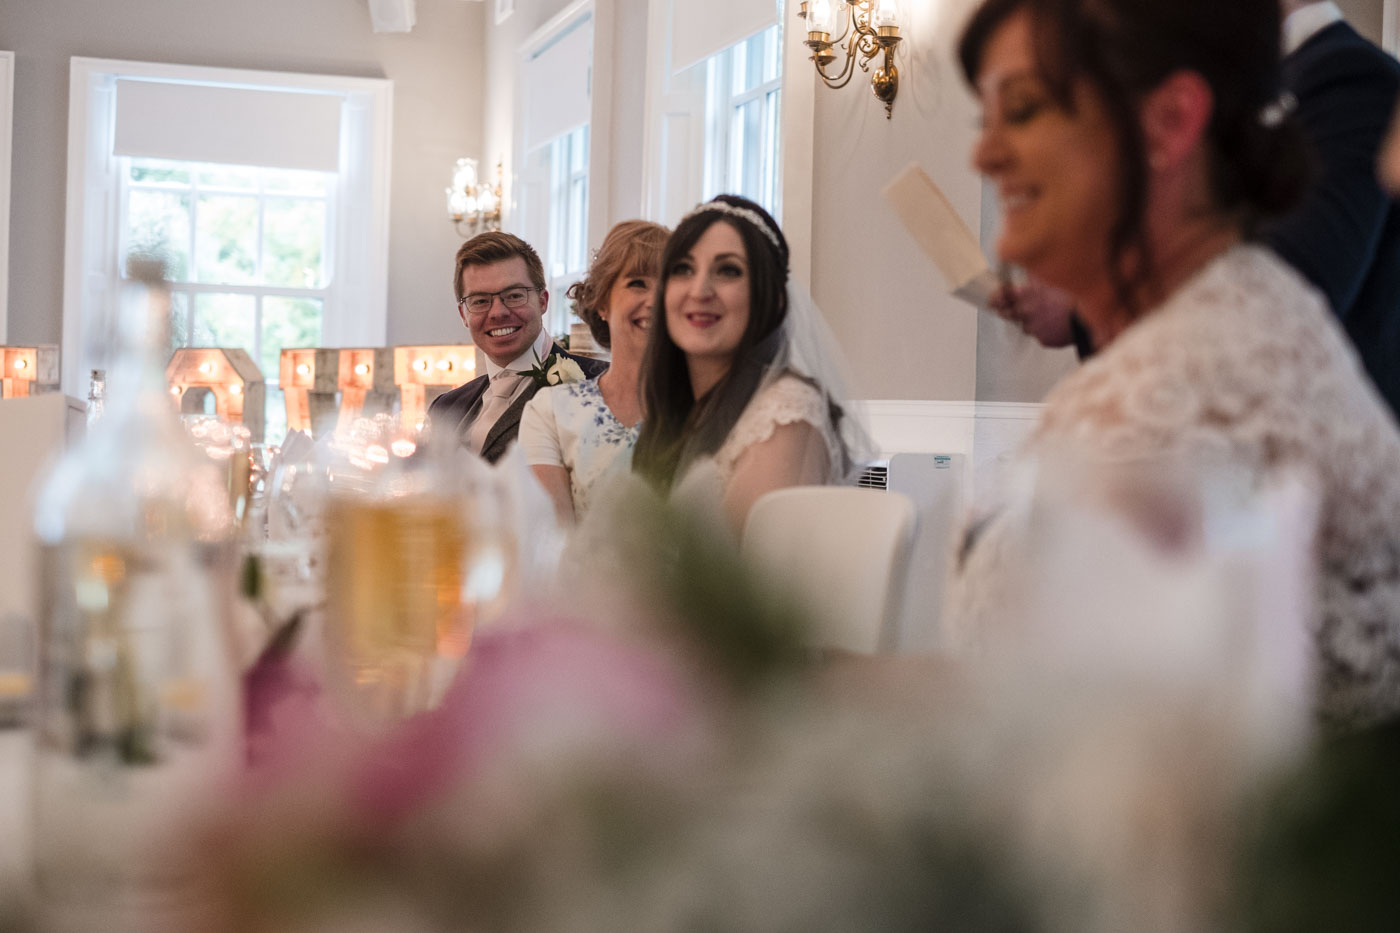 top table reactions to the grooms speech